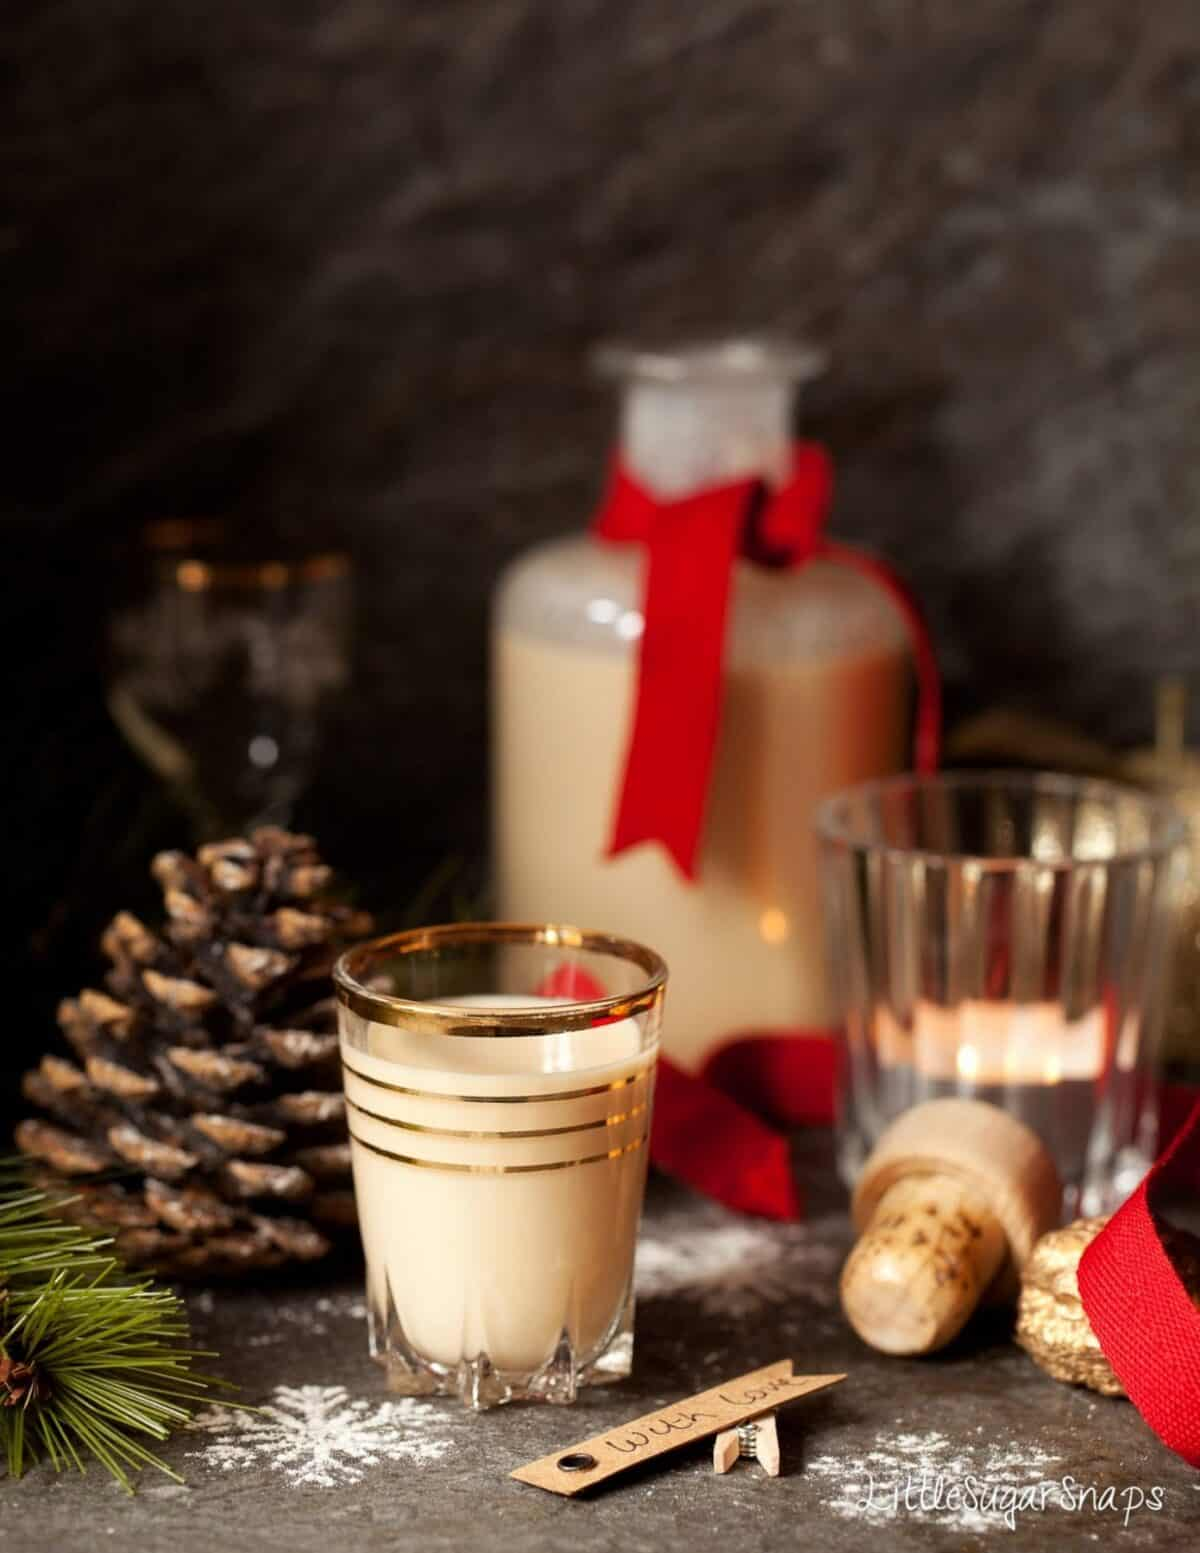 White Chocolate Liqueur in a small glass.